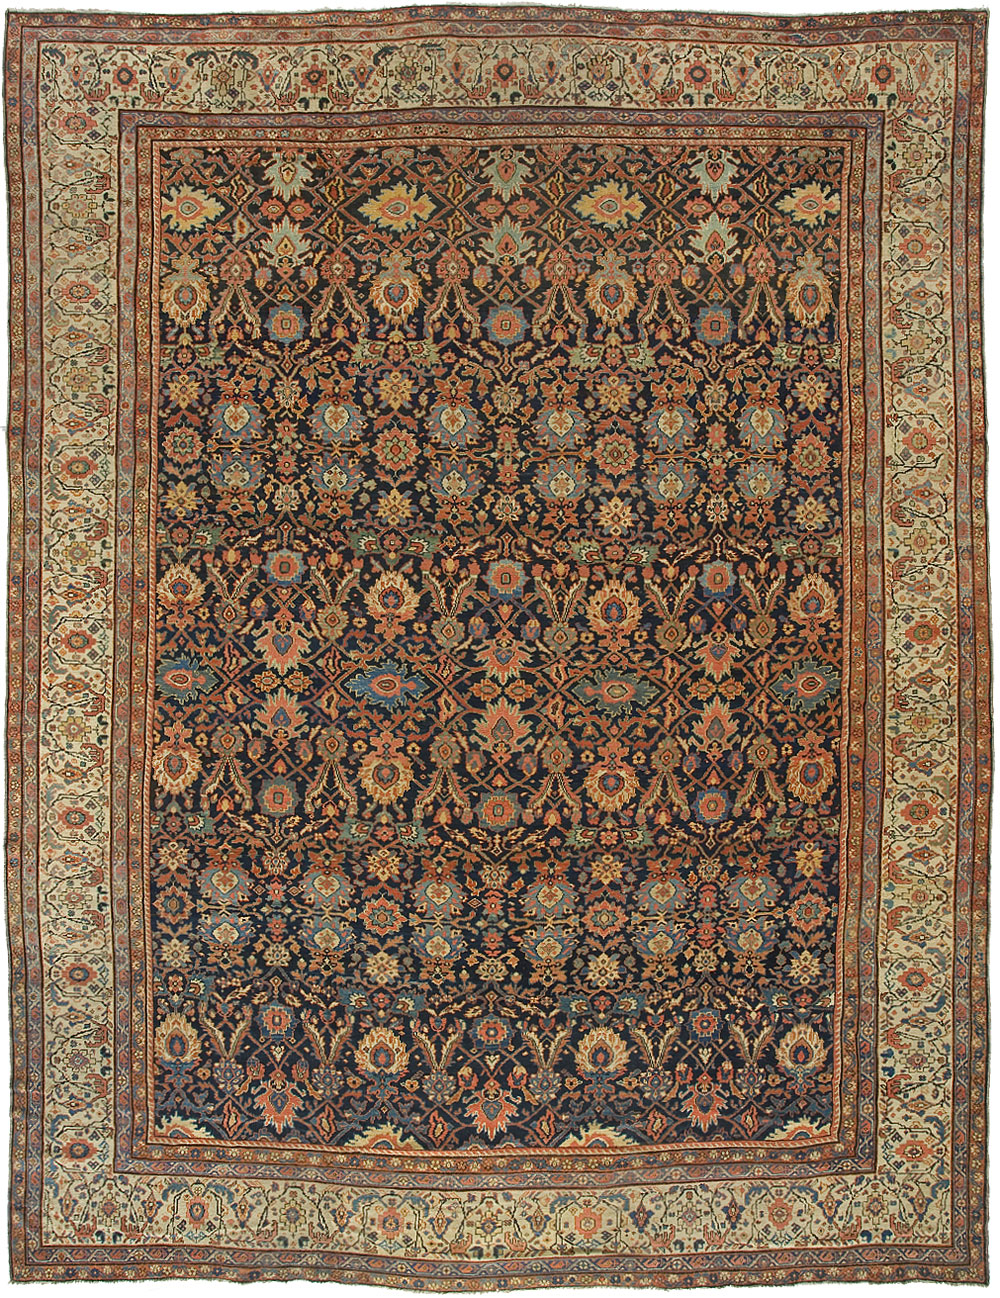 Fereghan Carpet_17356